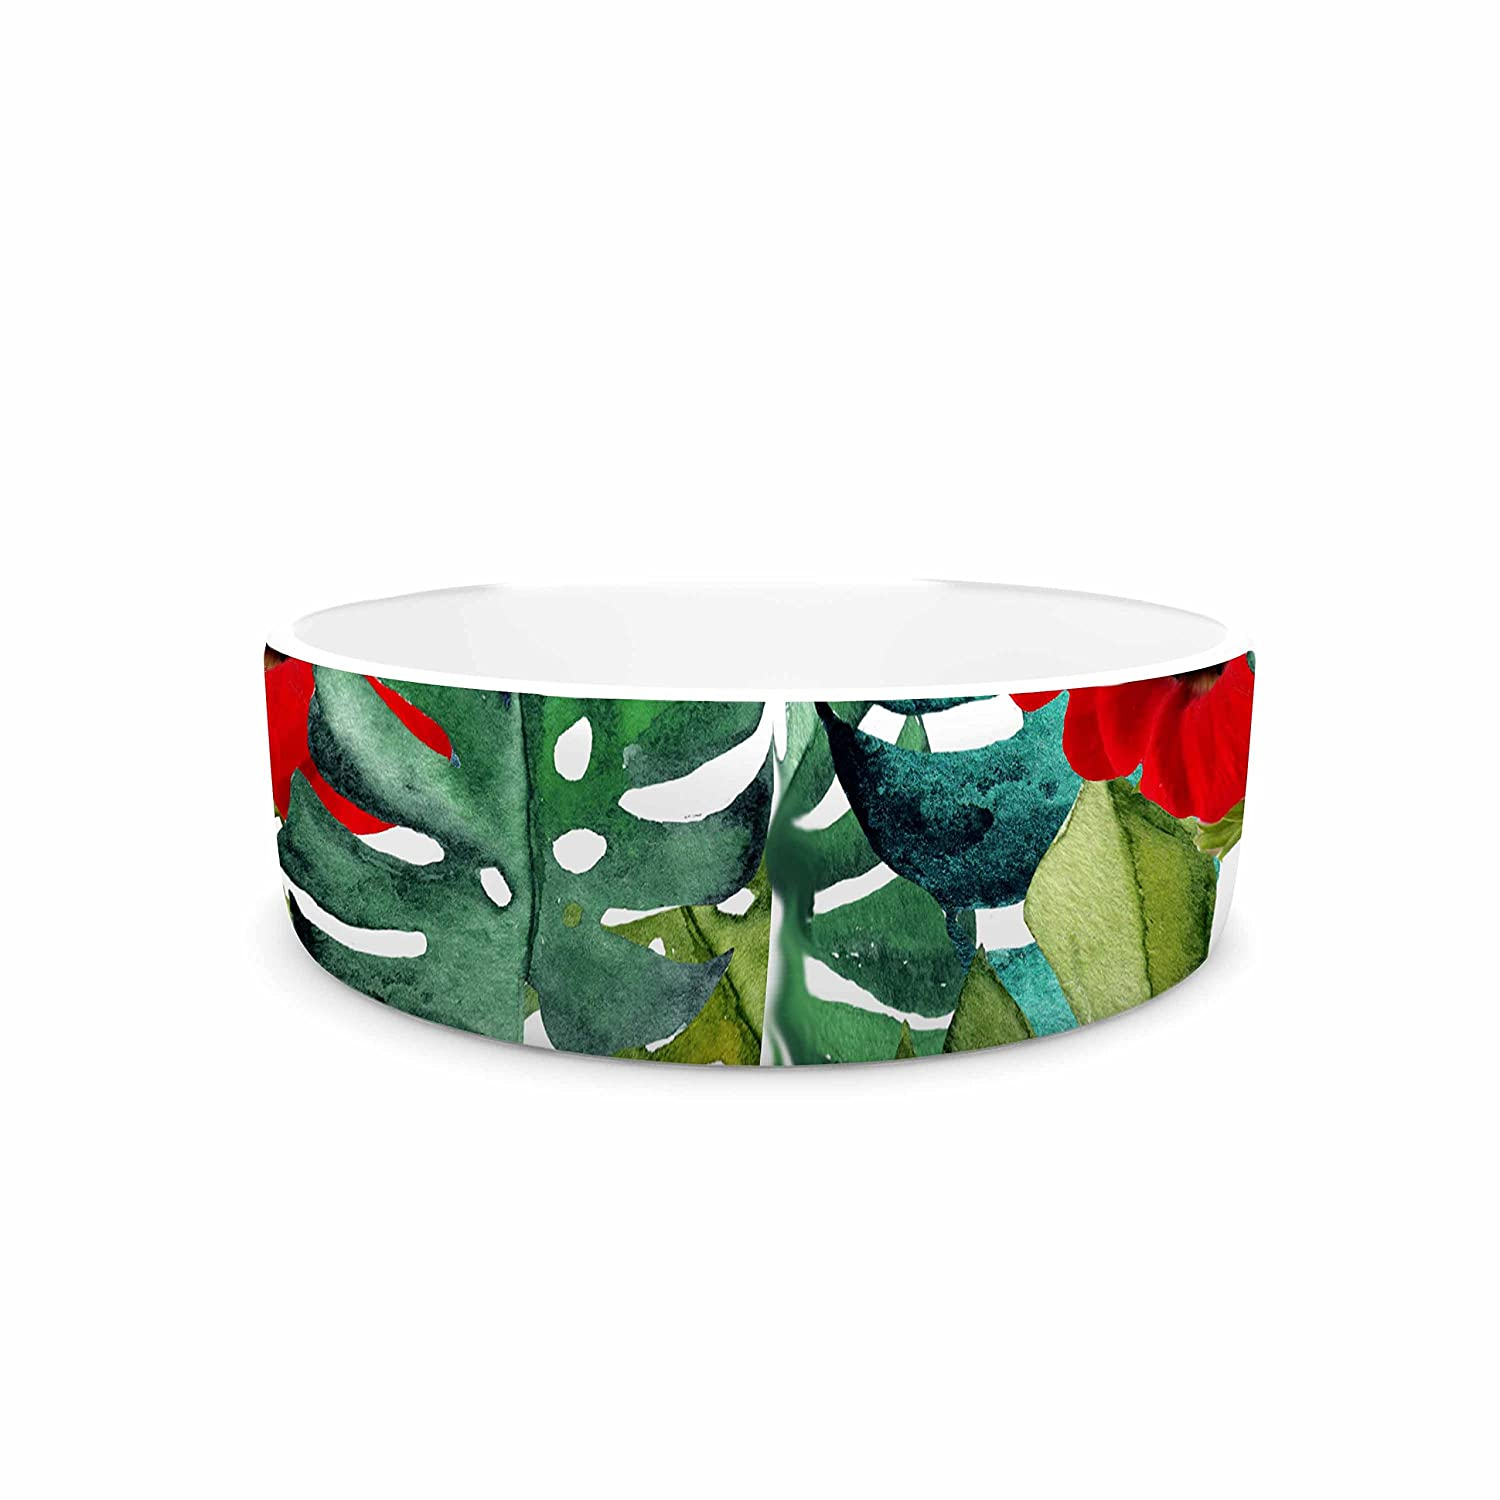 KESS InHouse Li Zamperini Tropical Vibes Green Olive Watercolor Pet Bowl, 4.75  Diameter